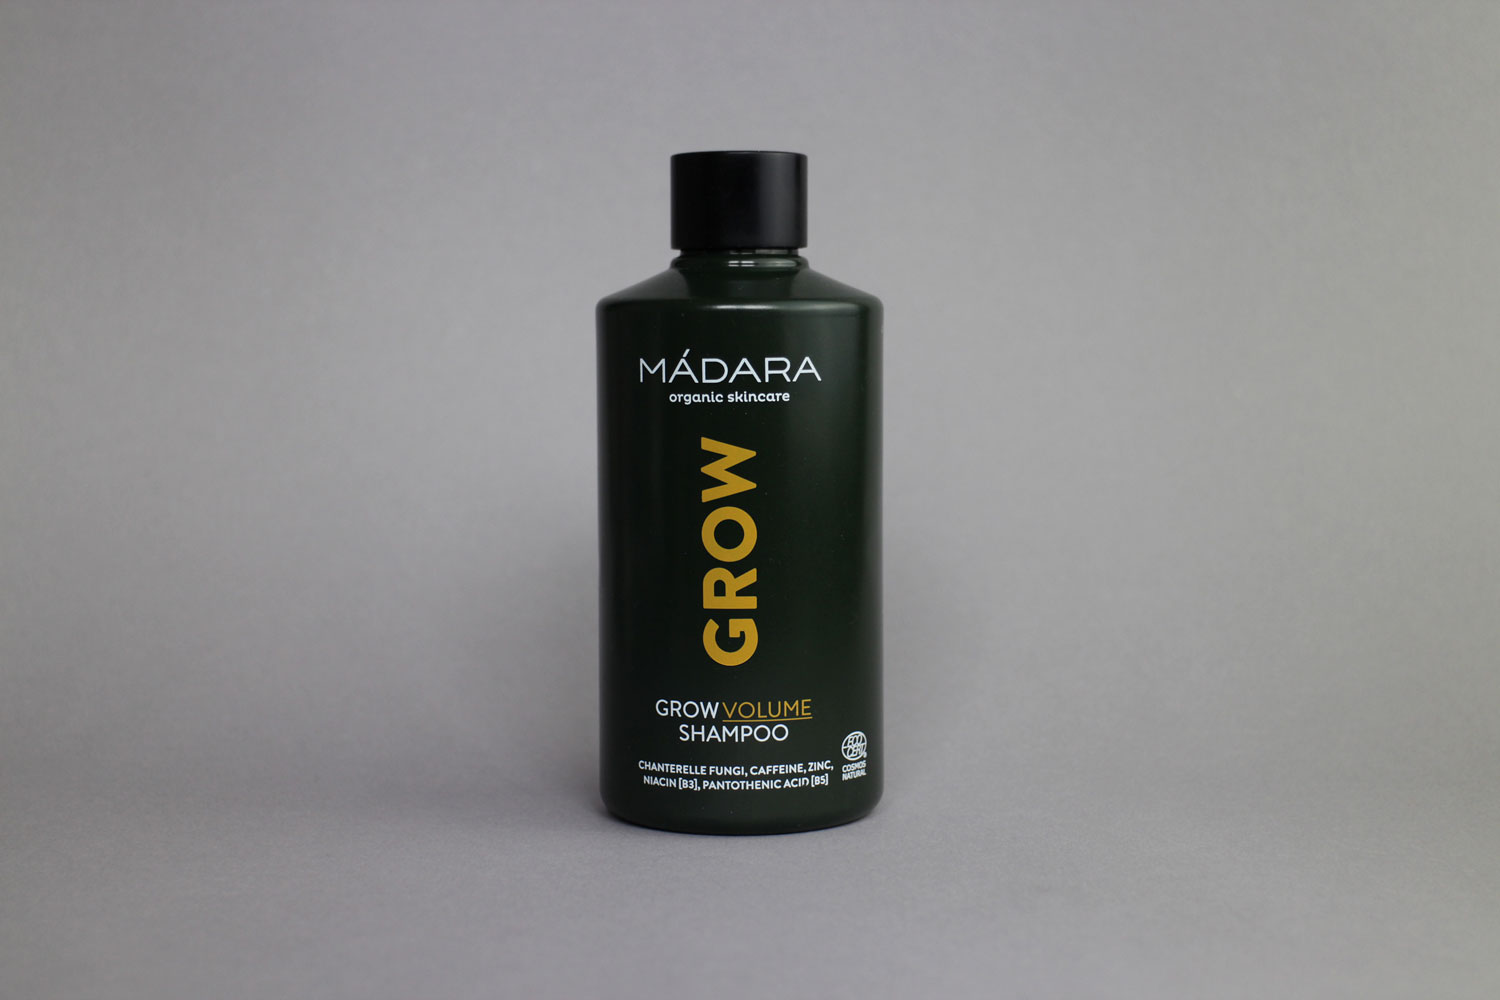 Growth Volume Shampoo Madara